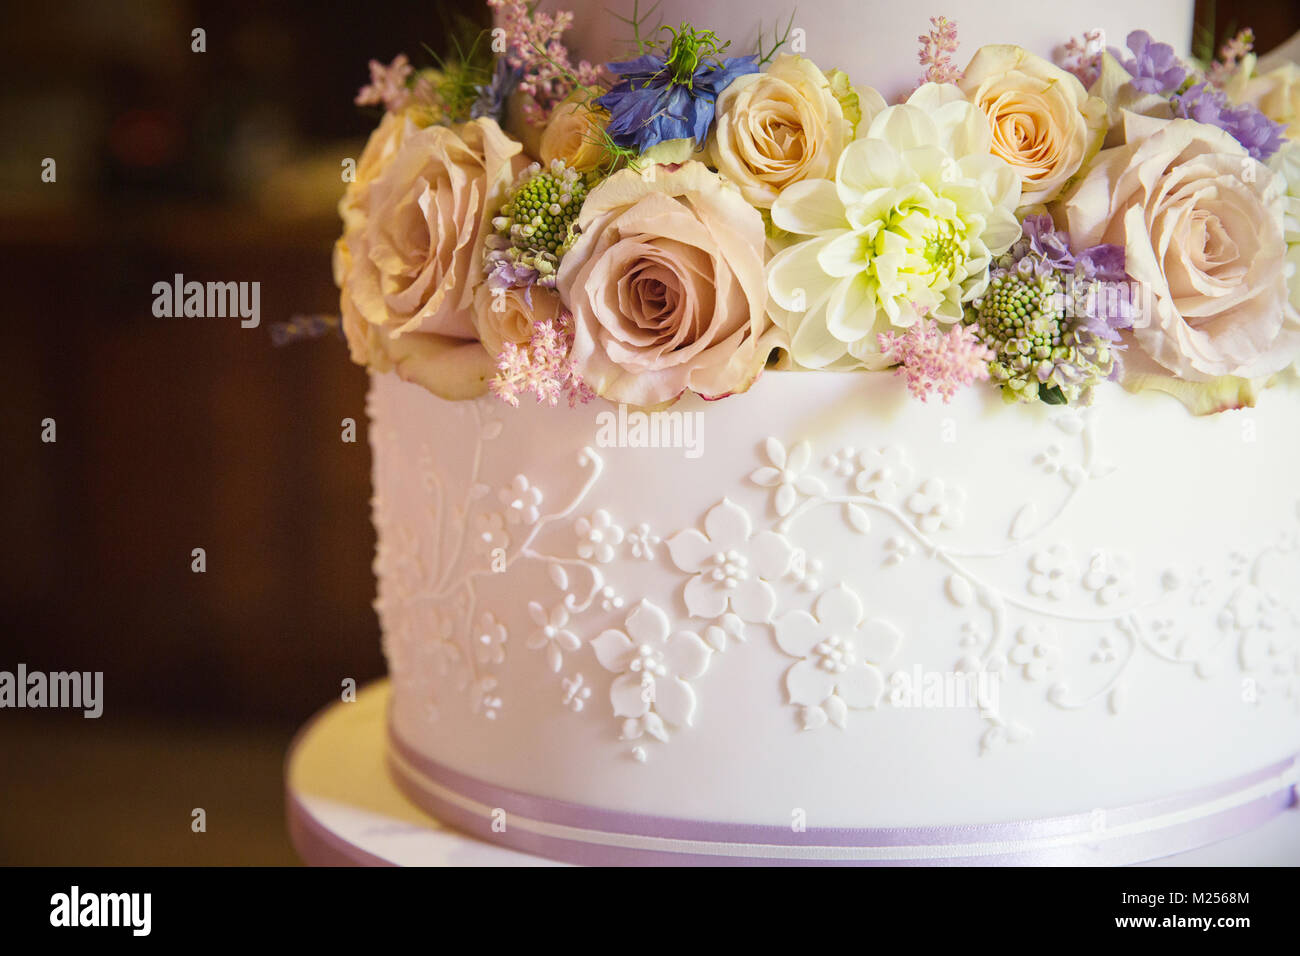 Fresh flowers on tier of wedding cake, close up - Stock Image